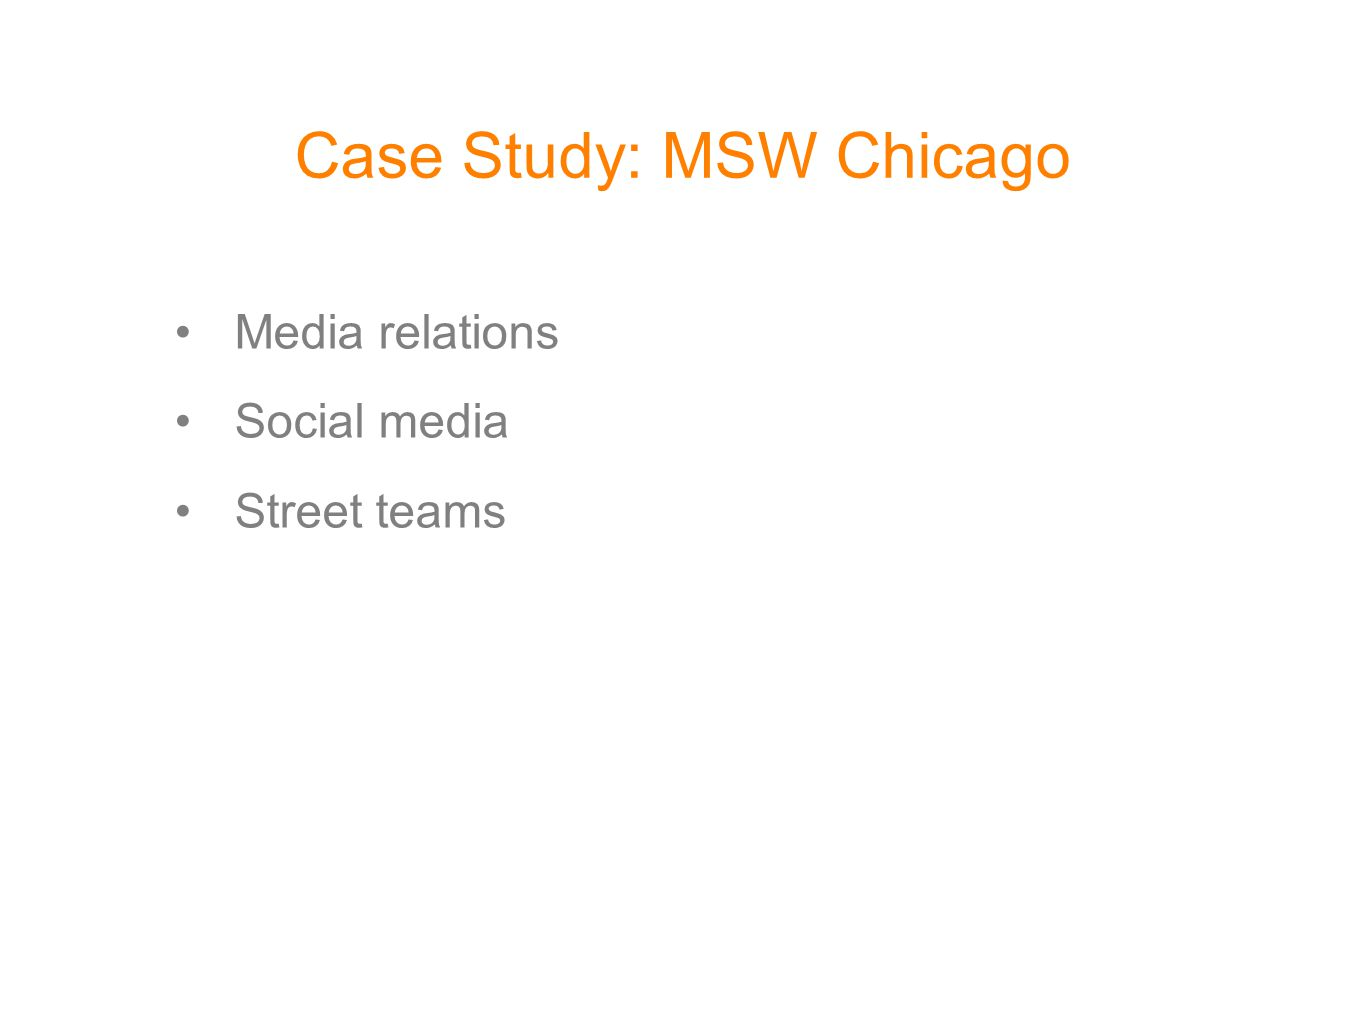 Case Study: MSW Chicago Media relations Social media Street teams